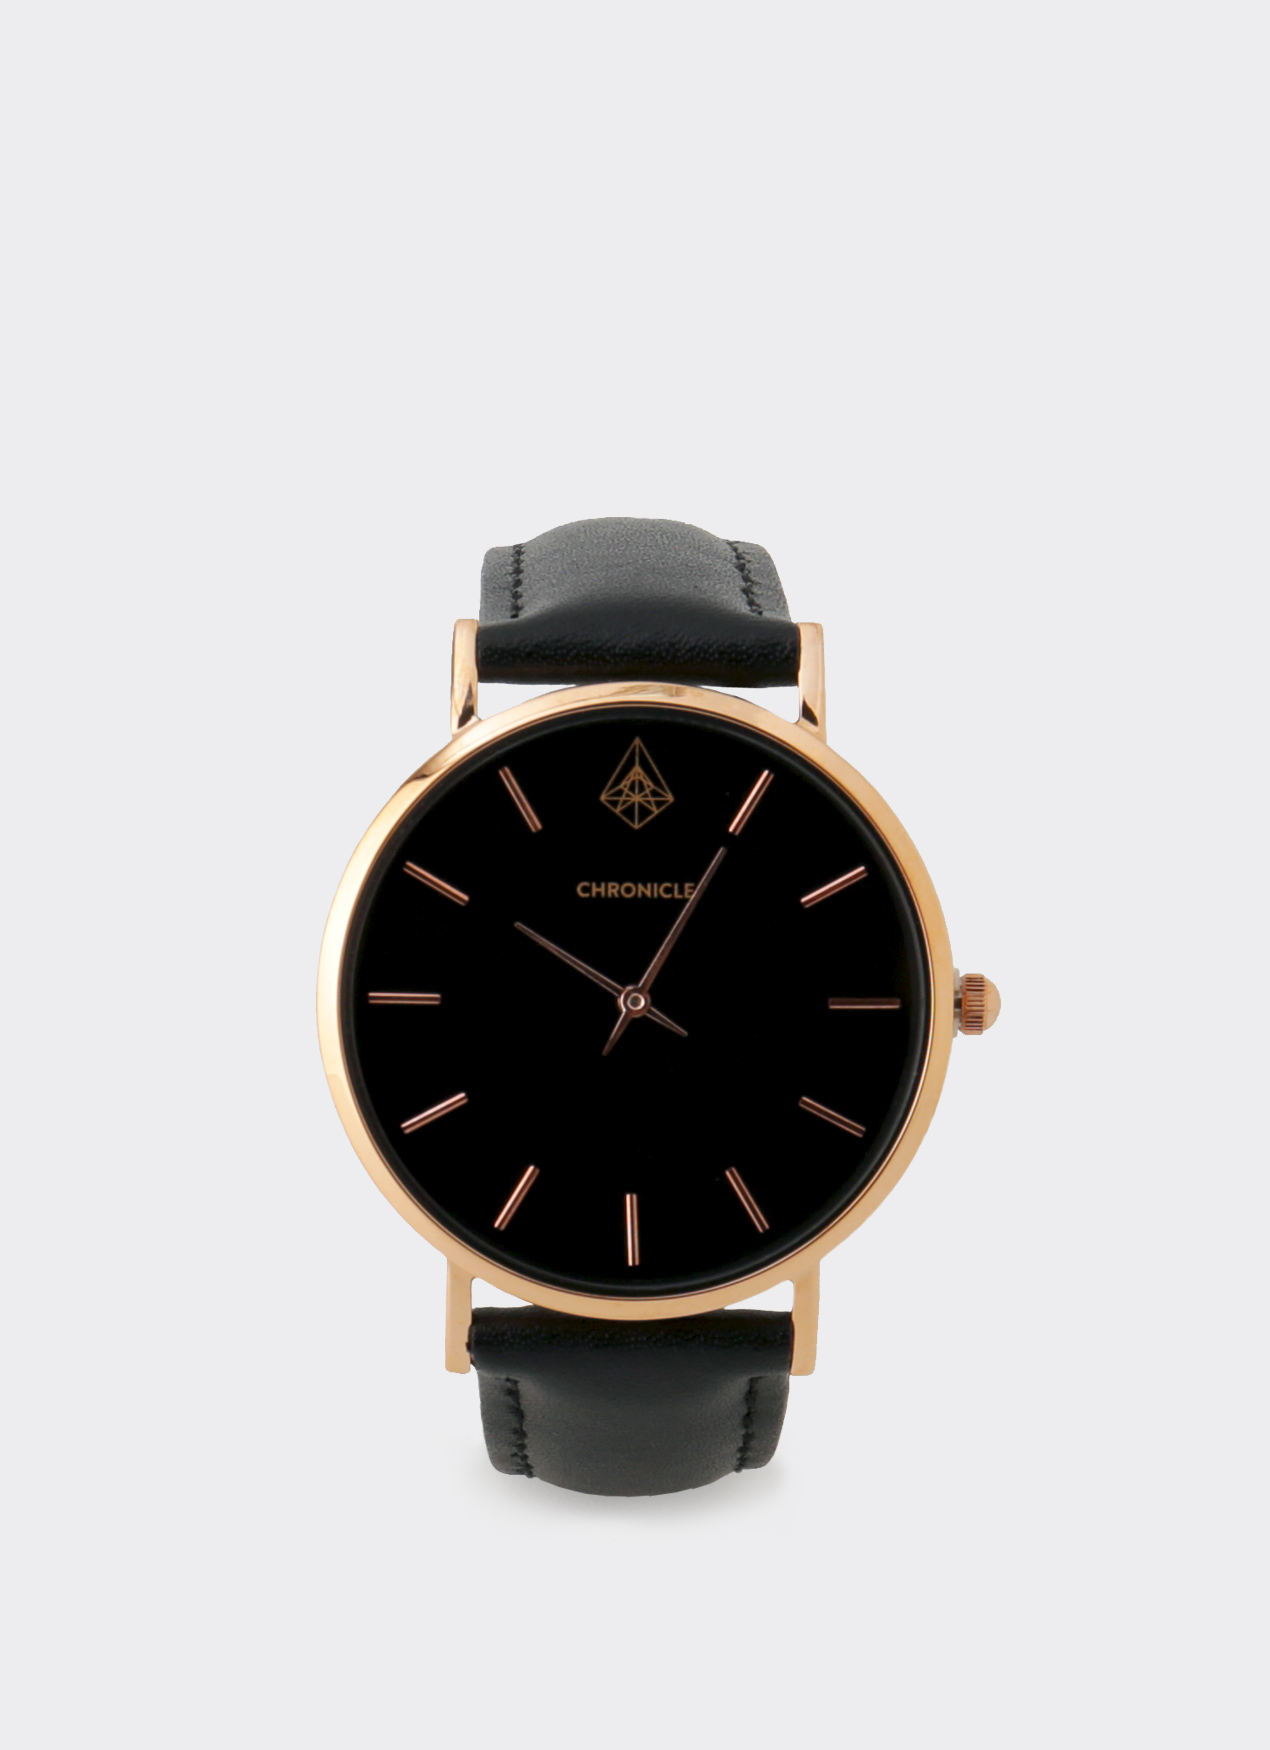 Chronicle Timepiece Rose Gold Bouverie 36 mm Watches